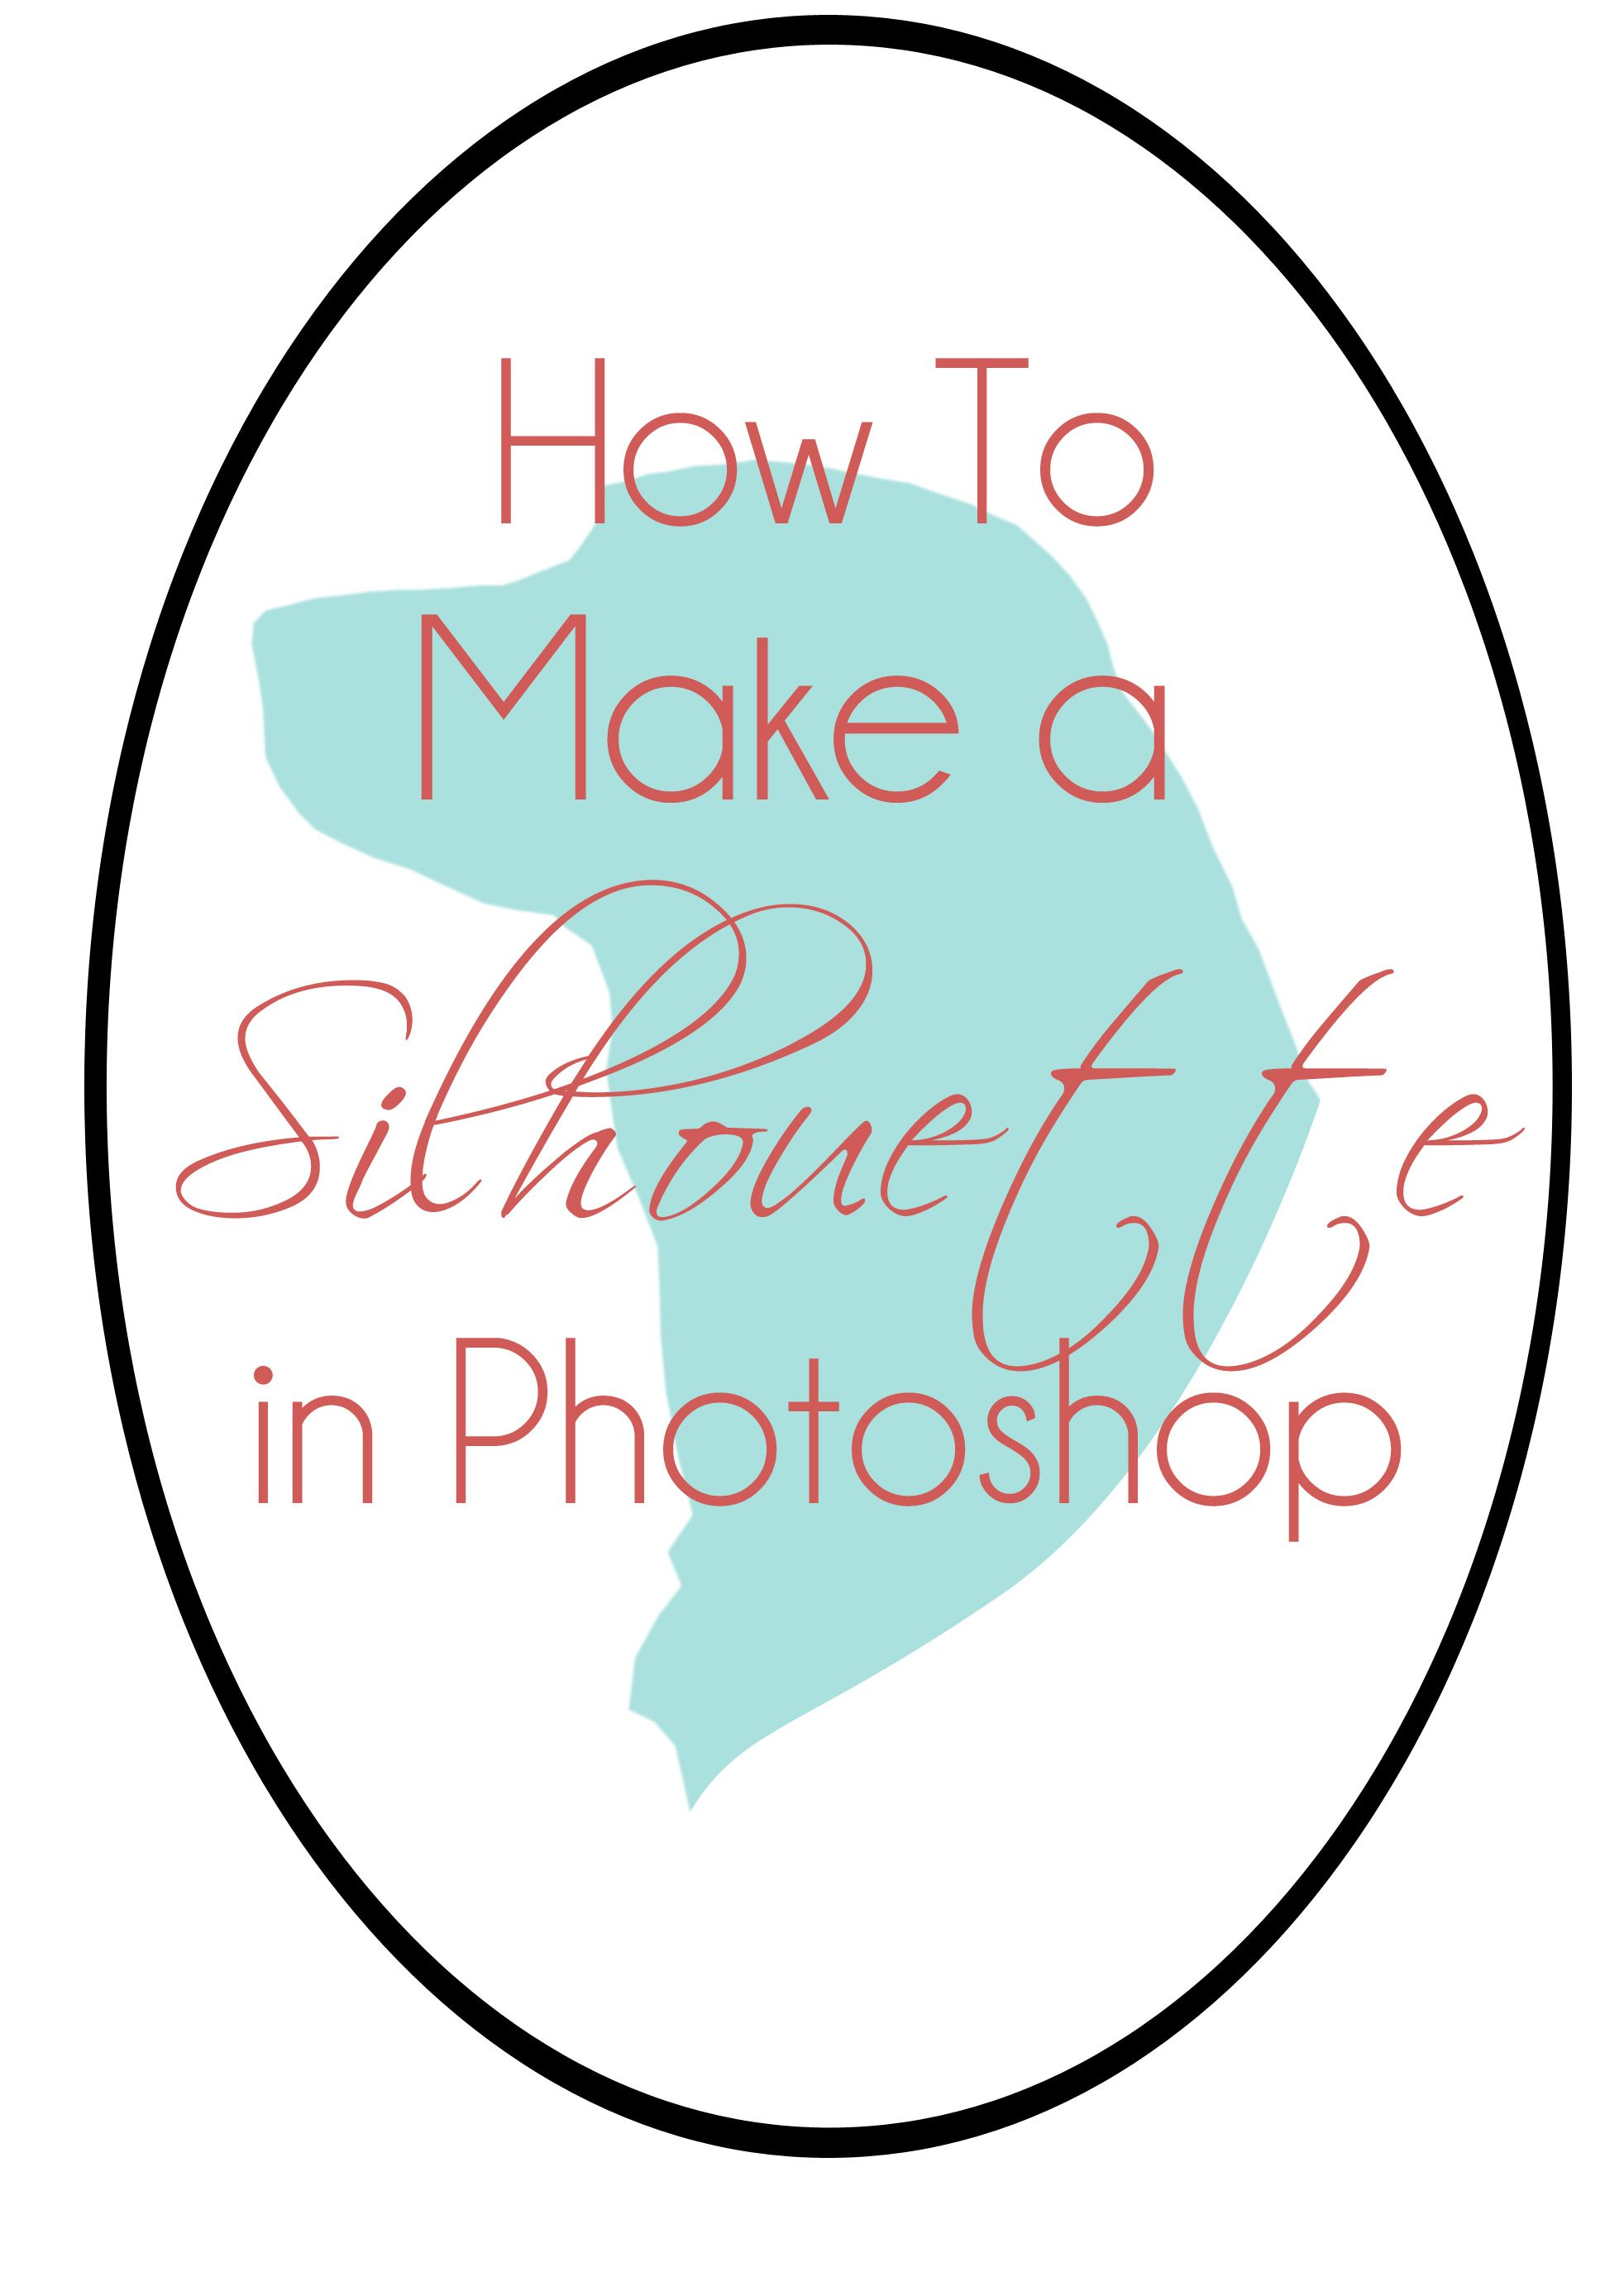 How to make a silhouette in photoshop graphic design pinterest how to make a silhouette in photoshop baditri Images